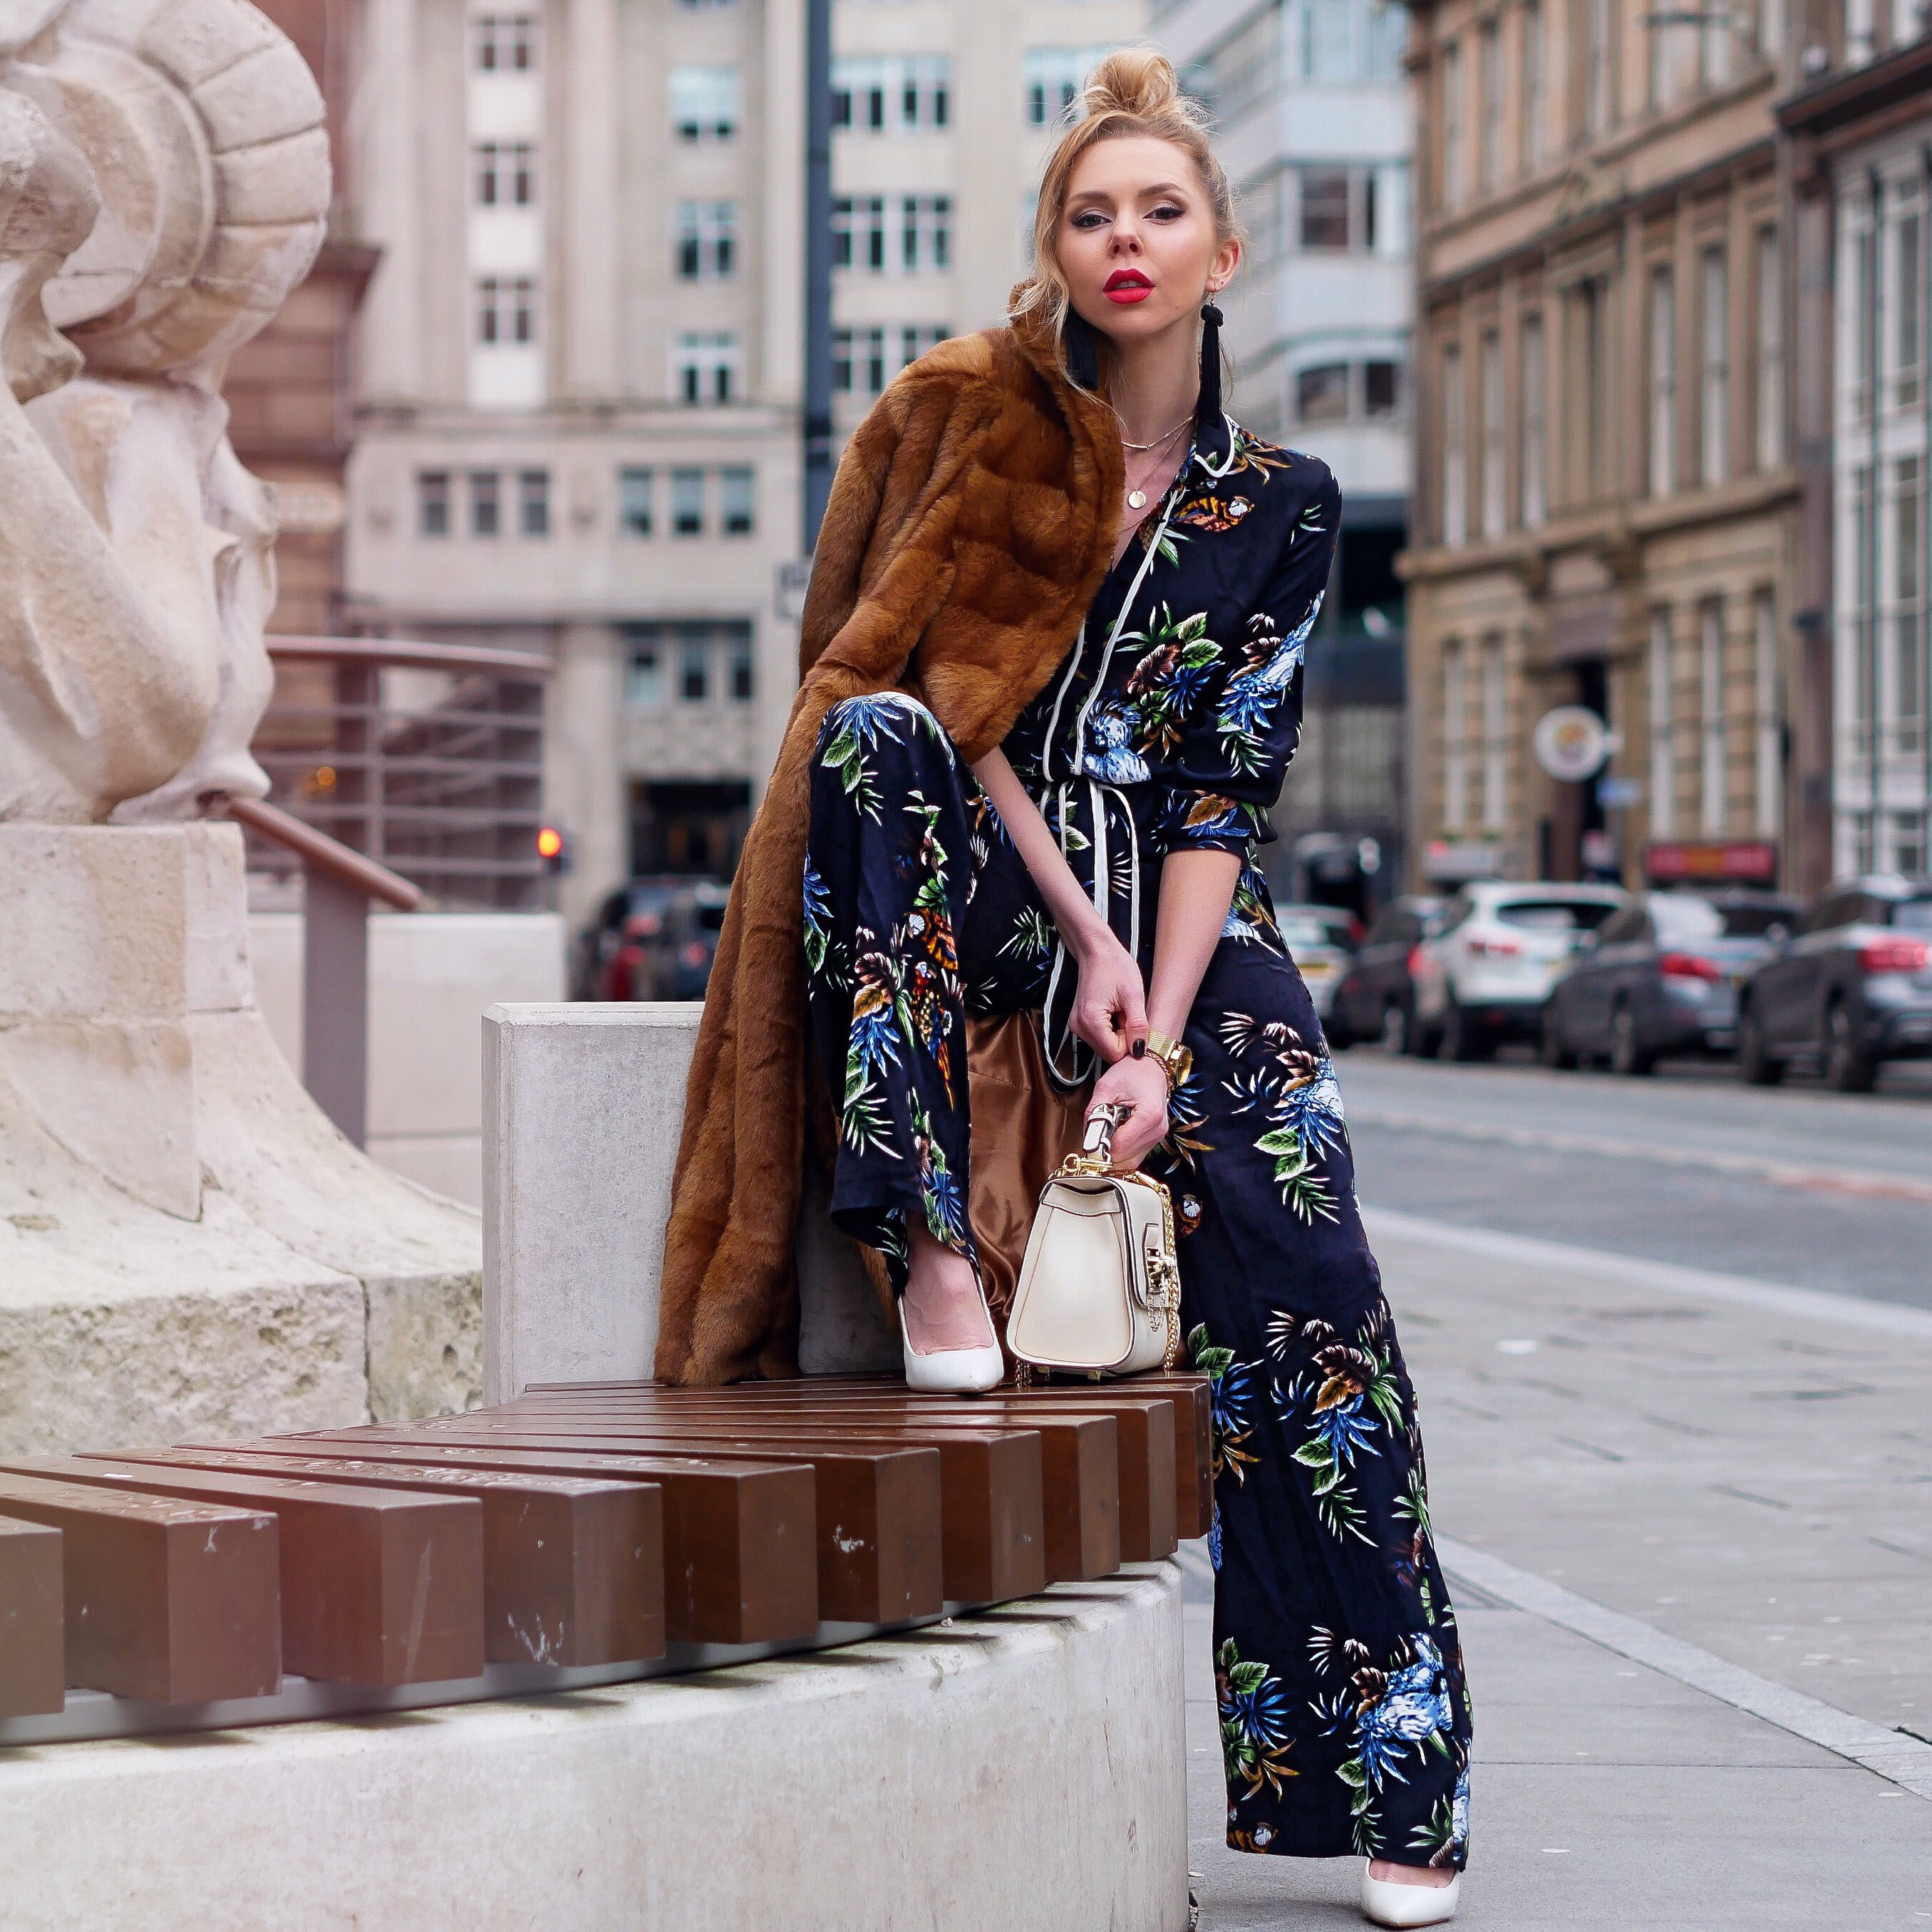 Laura Blair, London Fashion Girl, Tropical Trend, Flowers, Floral, Floral Jumpsuit, Zara, Street Stlye